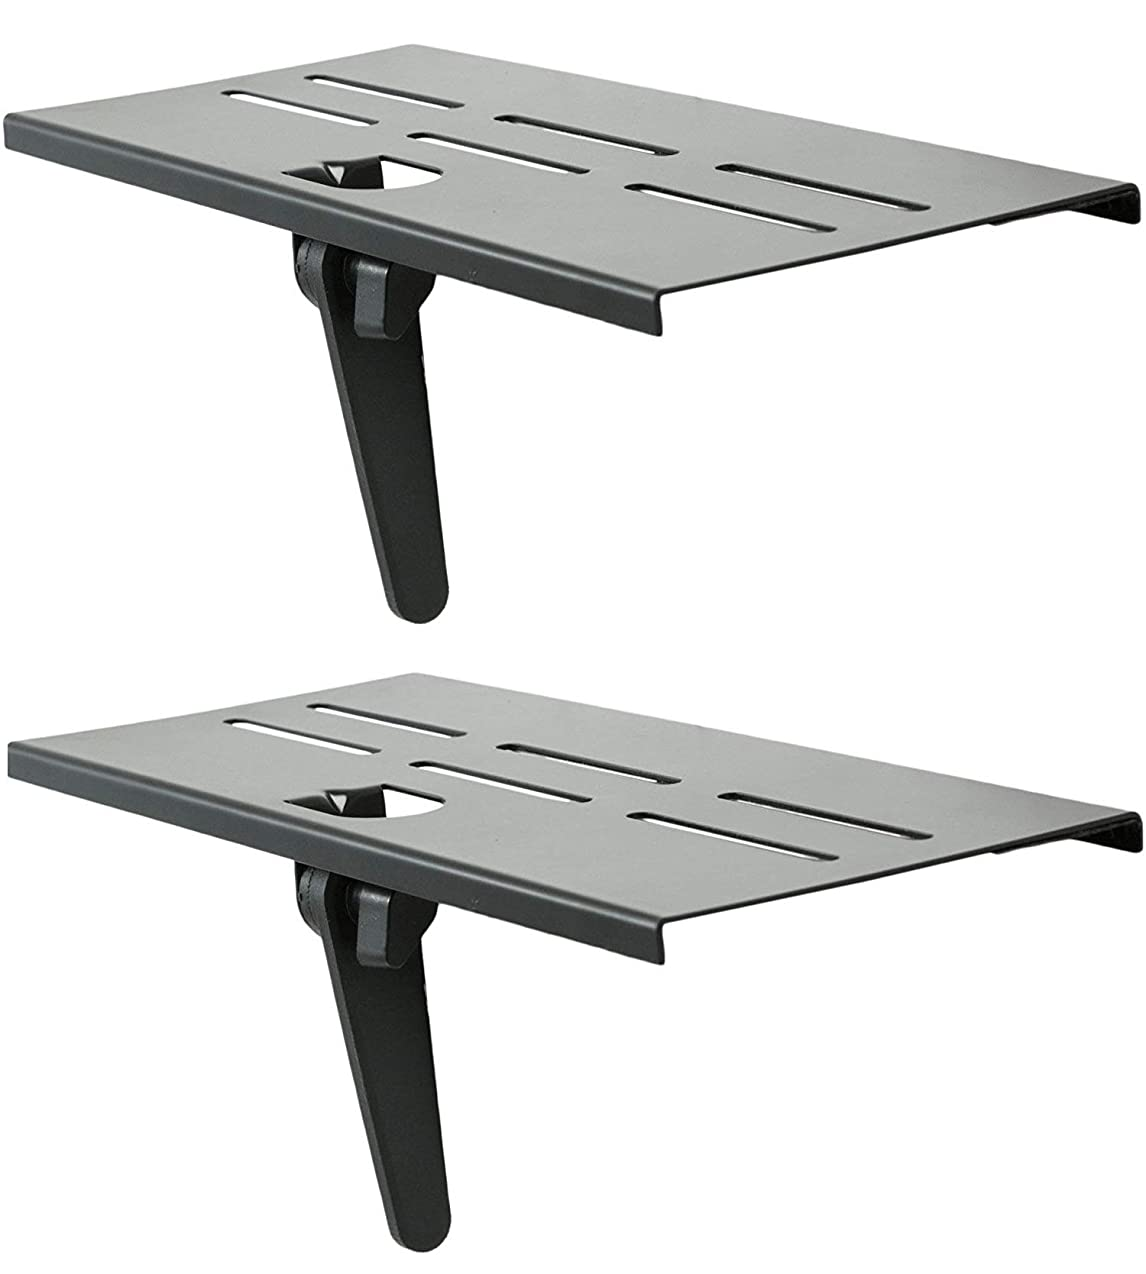 Mount Plus MP-APM-05-01 Top Shelf TV Mounting Bracket 12-inch Wide Platform | Holds Speaker, Streaming Device, Game Console, and More (2 Pack) rcqmponvkymn0133